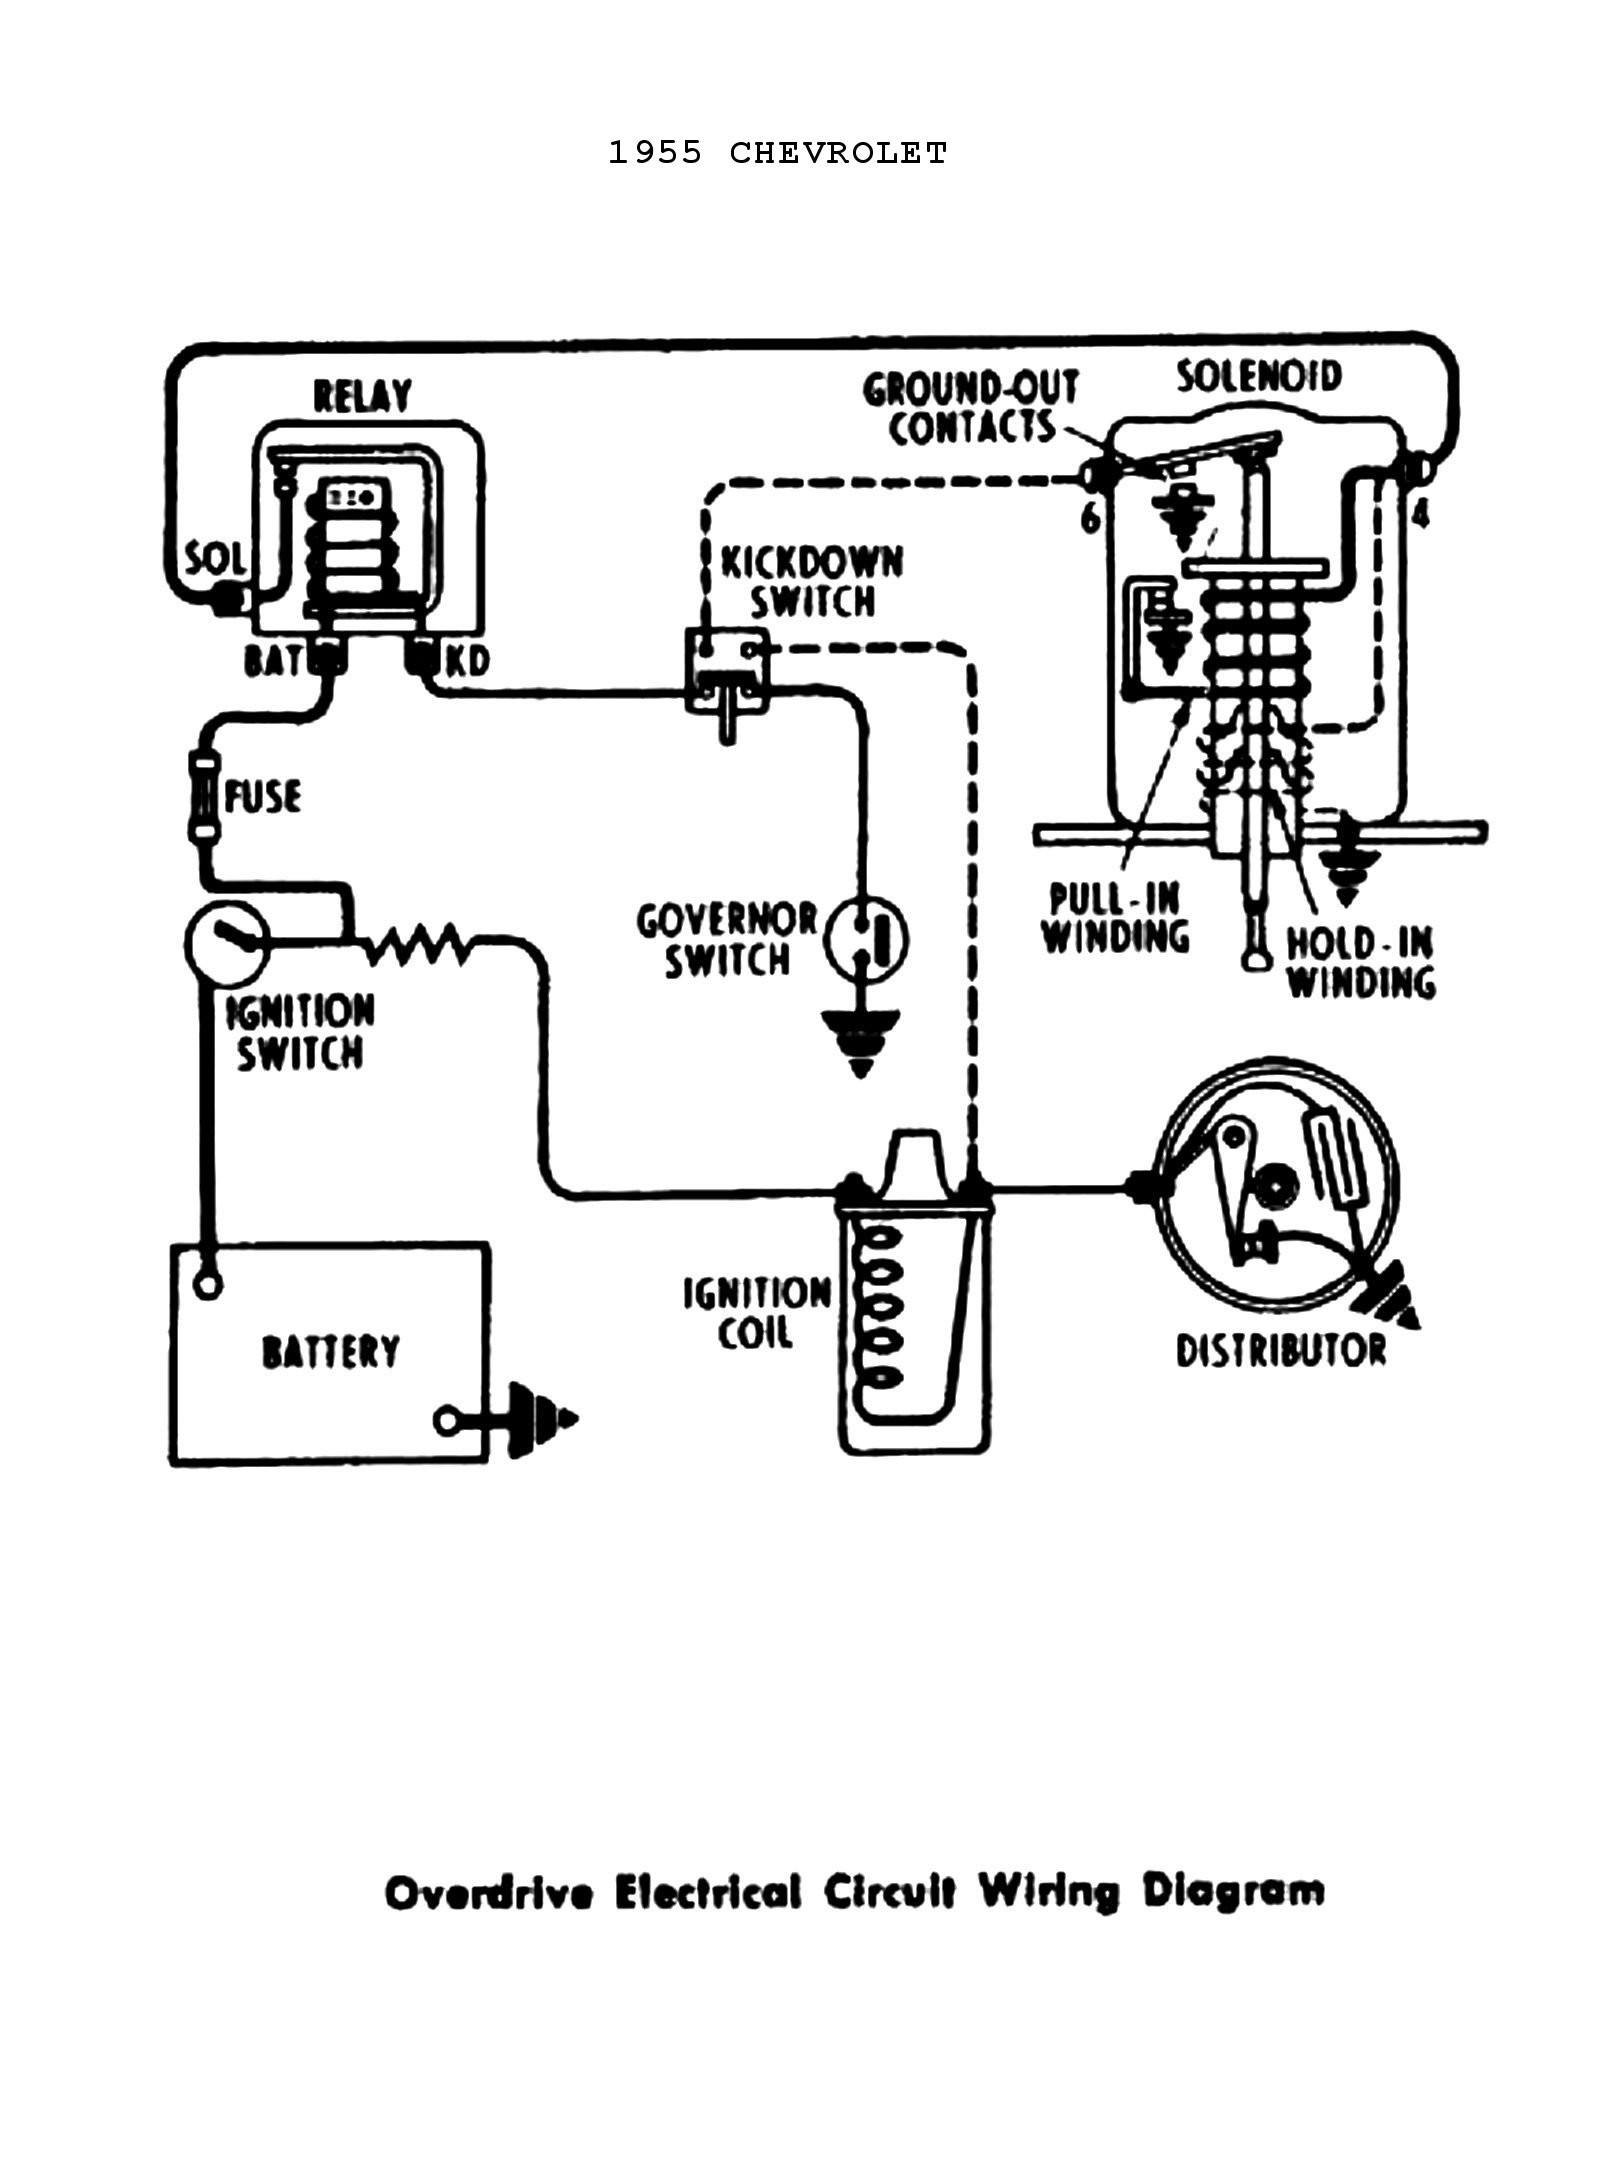 hight resolution of power window switch diagram wiring diagram in addition 57 chevy heater diagram also 1996 chevy of